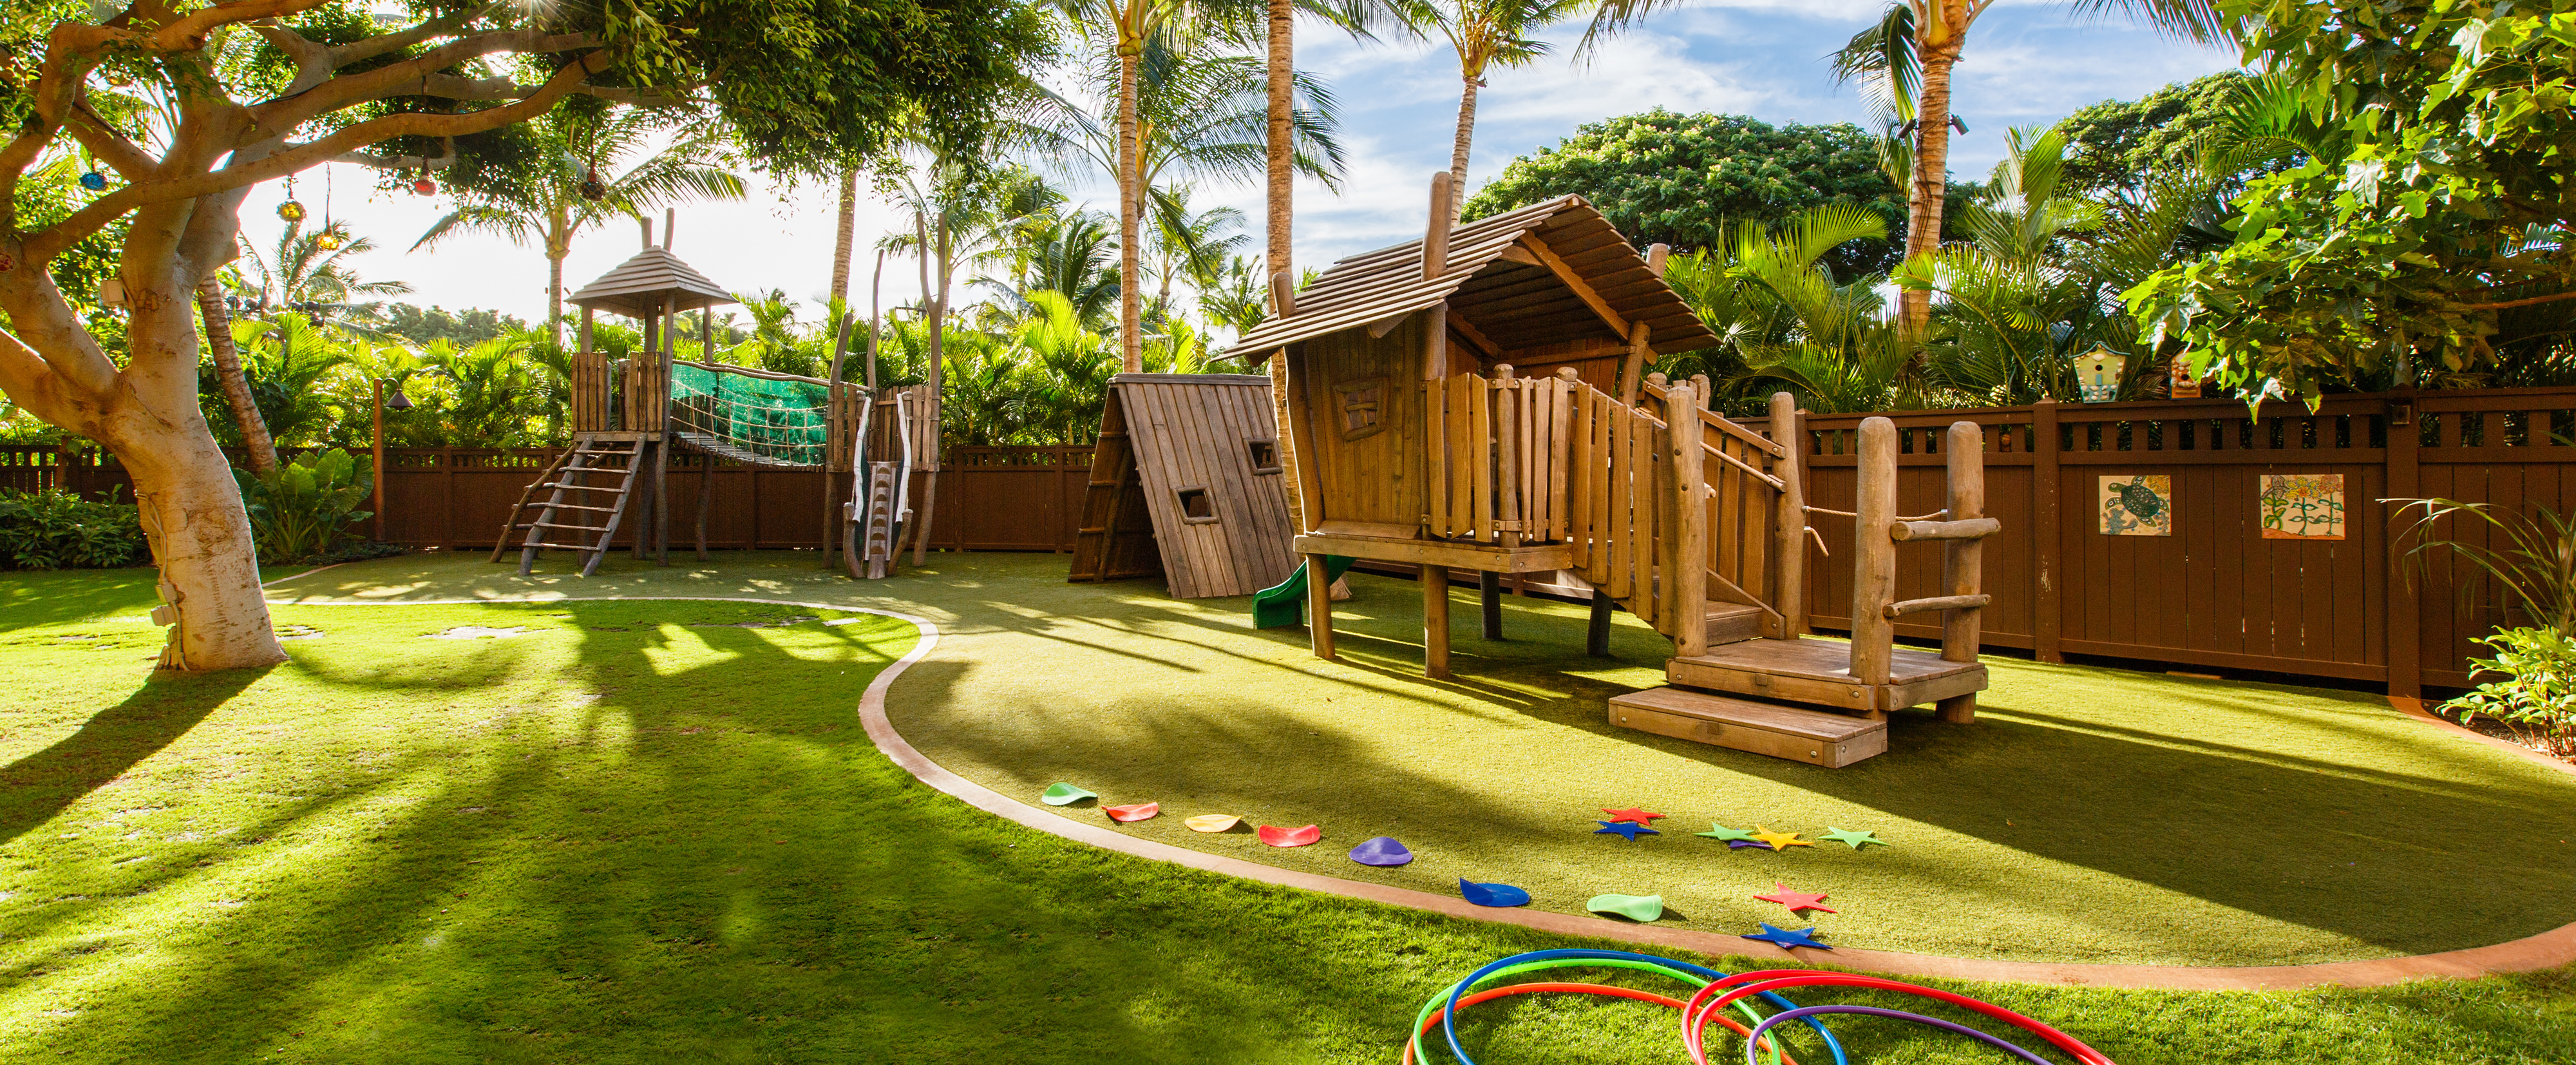 Garten Hanglage Kinder Aunty 39s Beach House Kids Club Aulani Hawaii Resort And Spa